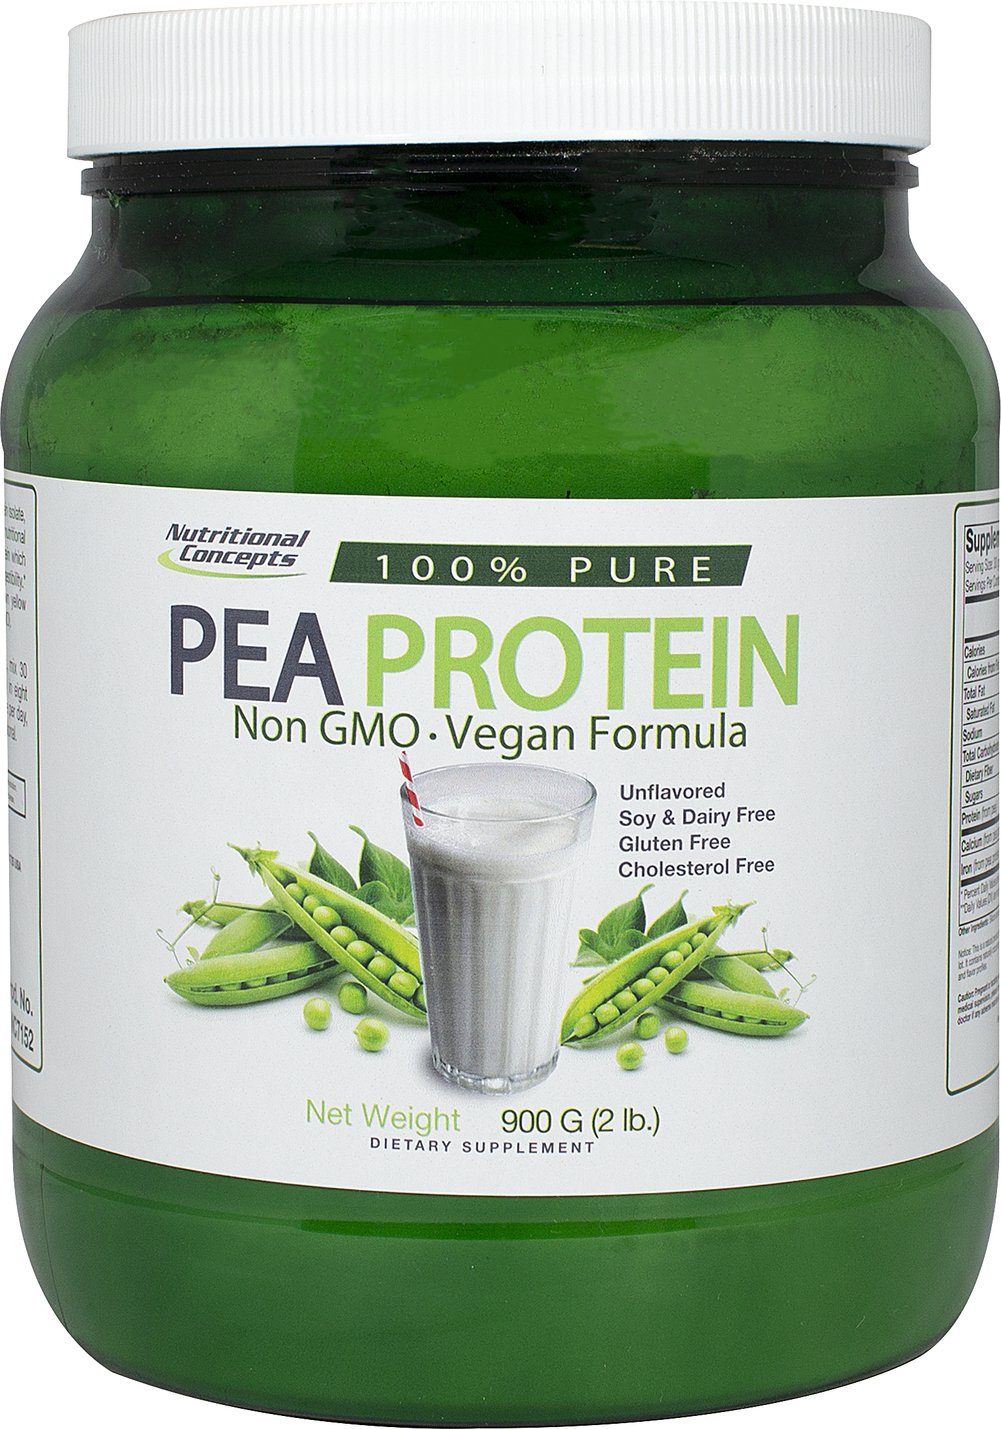 Pea Protein Thumbnail Alternate Bottle View